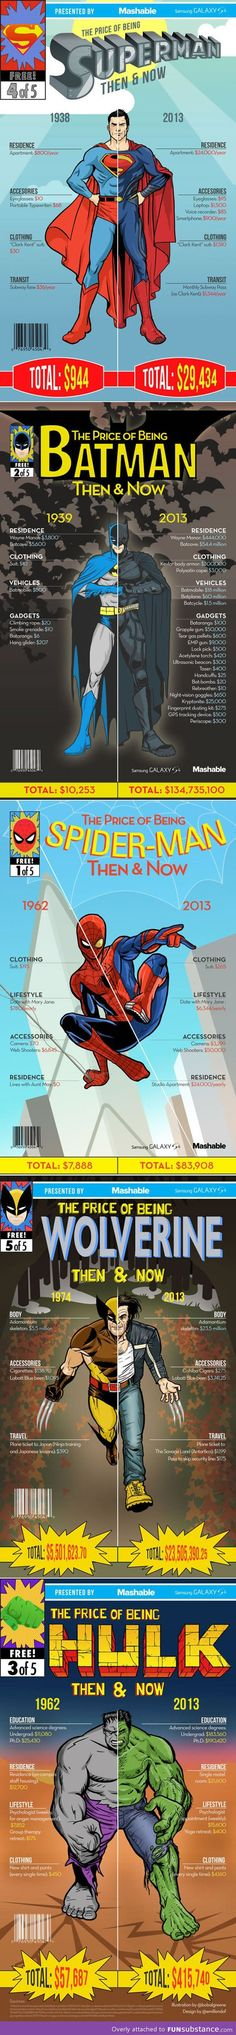 The cost of being a superhero then and now